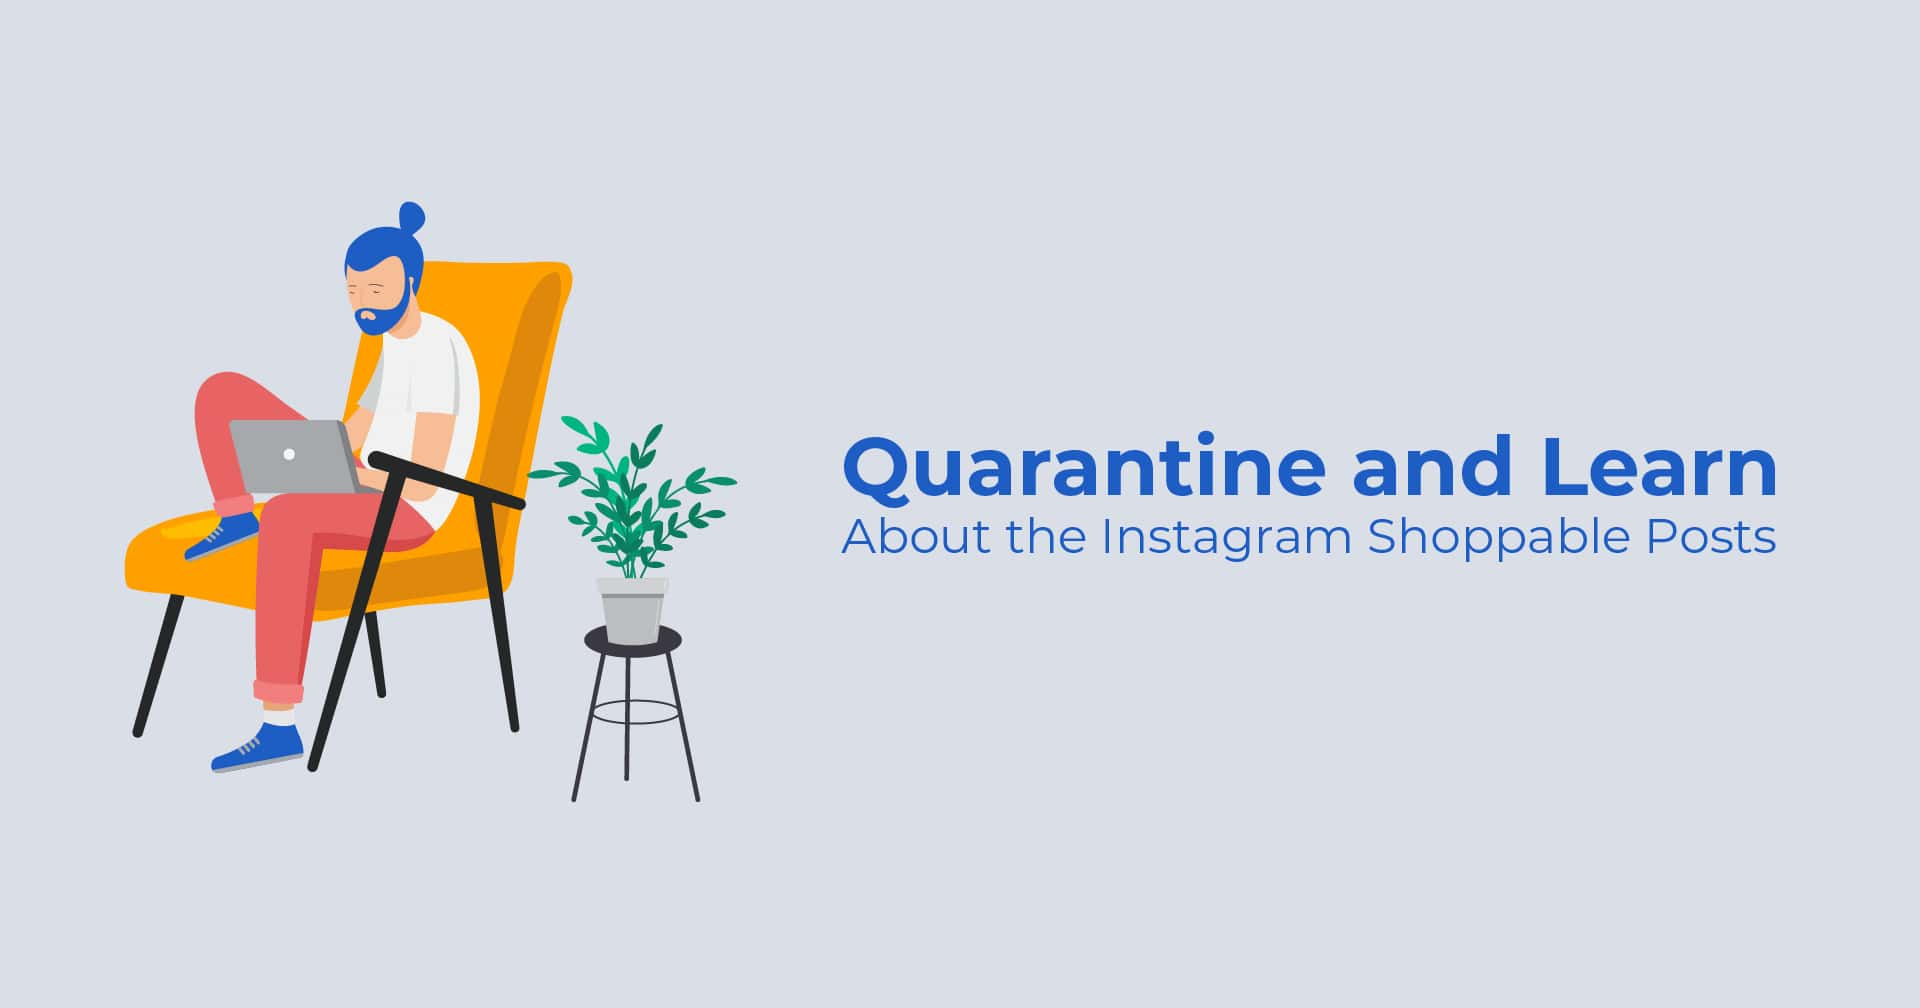 Quarantine and learn about the Instagram shoppable post